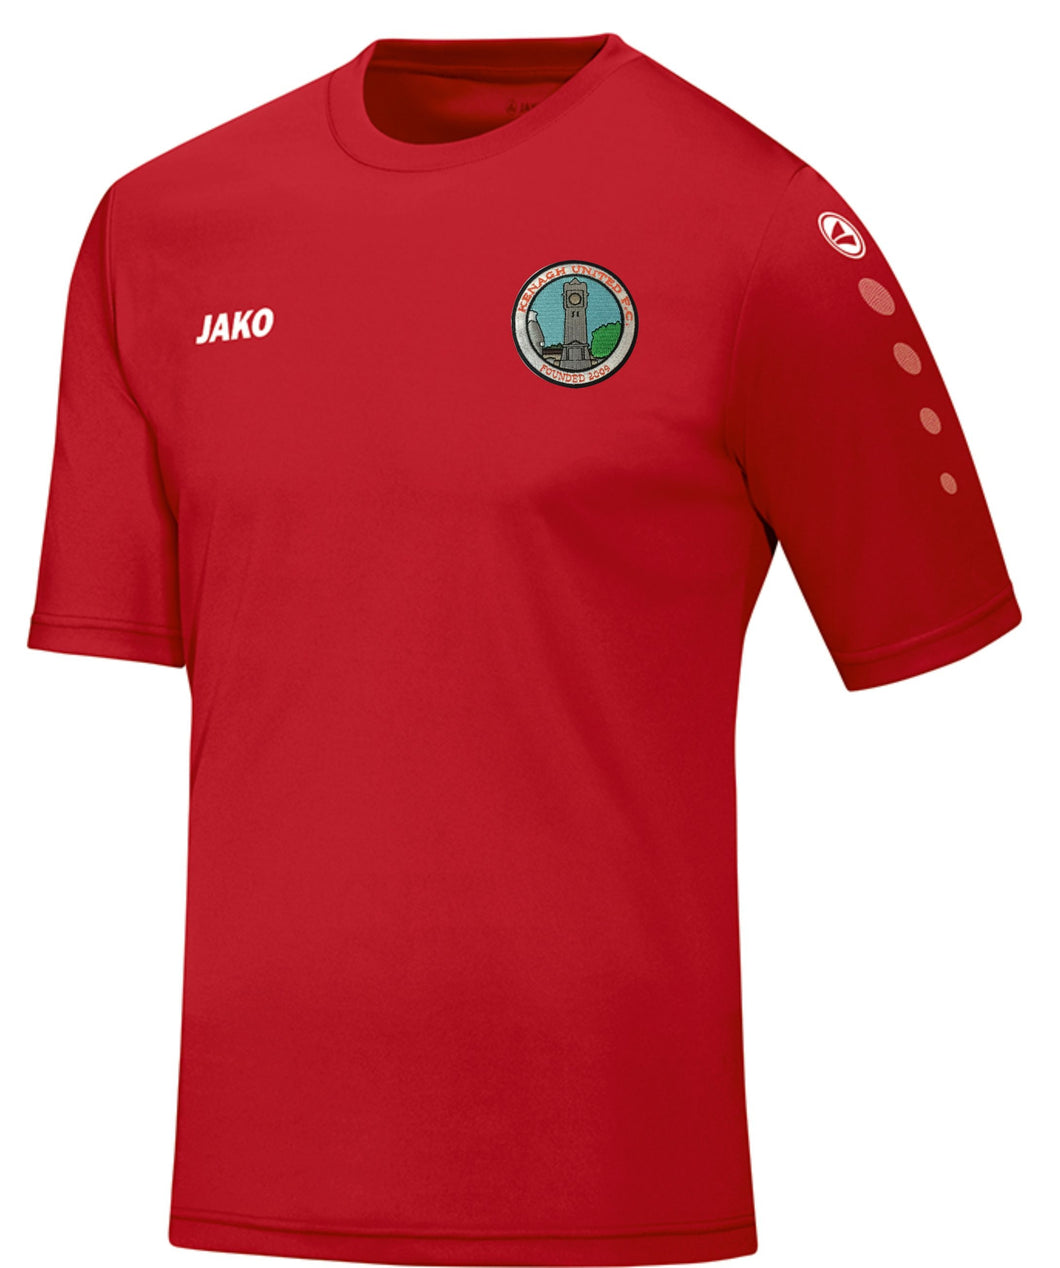 ADULT JAKO KENAGH UNITED JERSEY TEAM KU4233